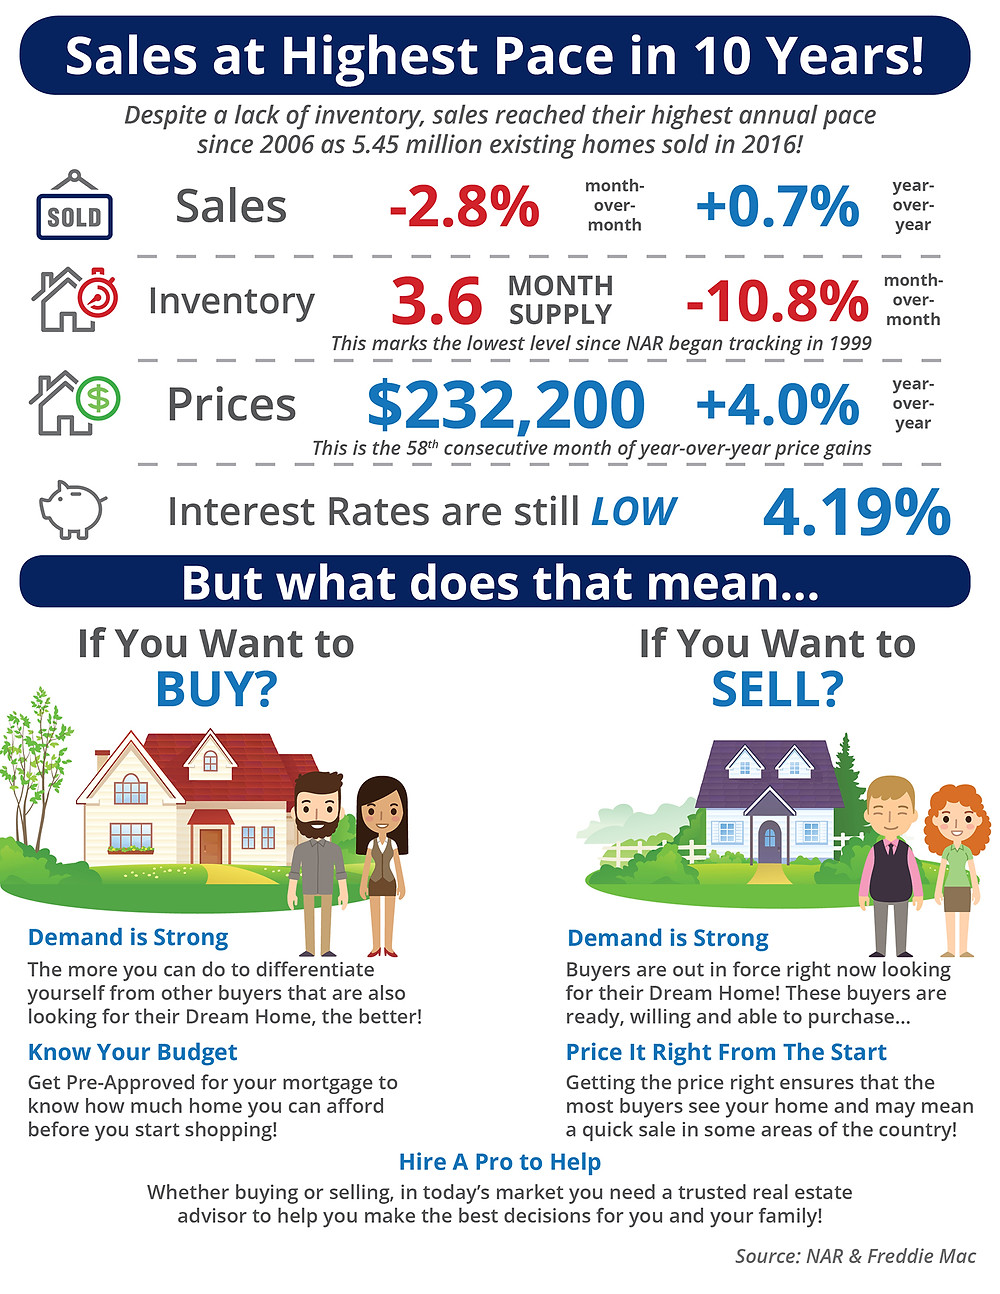 Sales at Highest Pace in 10 Years! [INFOGRAPHIC]   Simplifying The Market